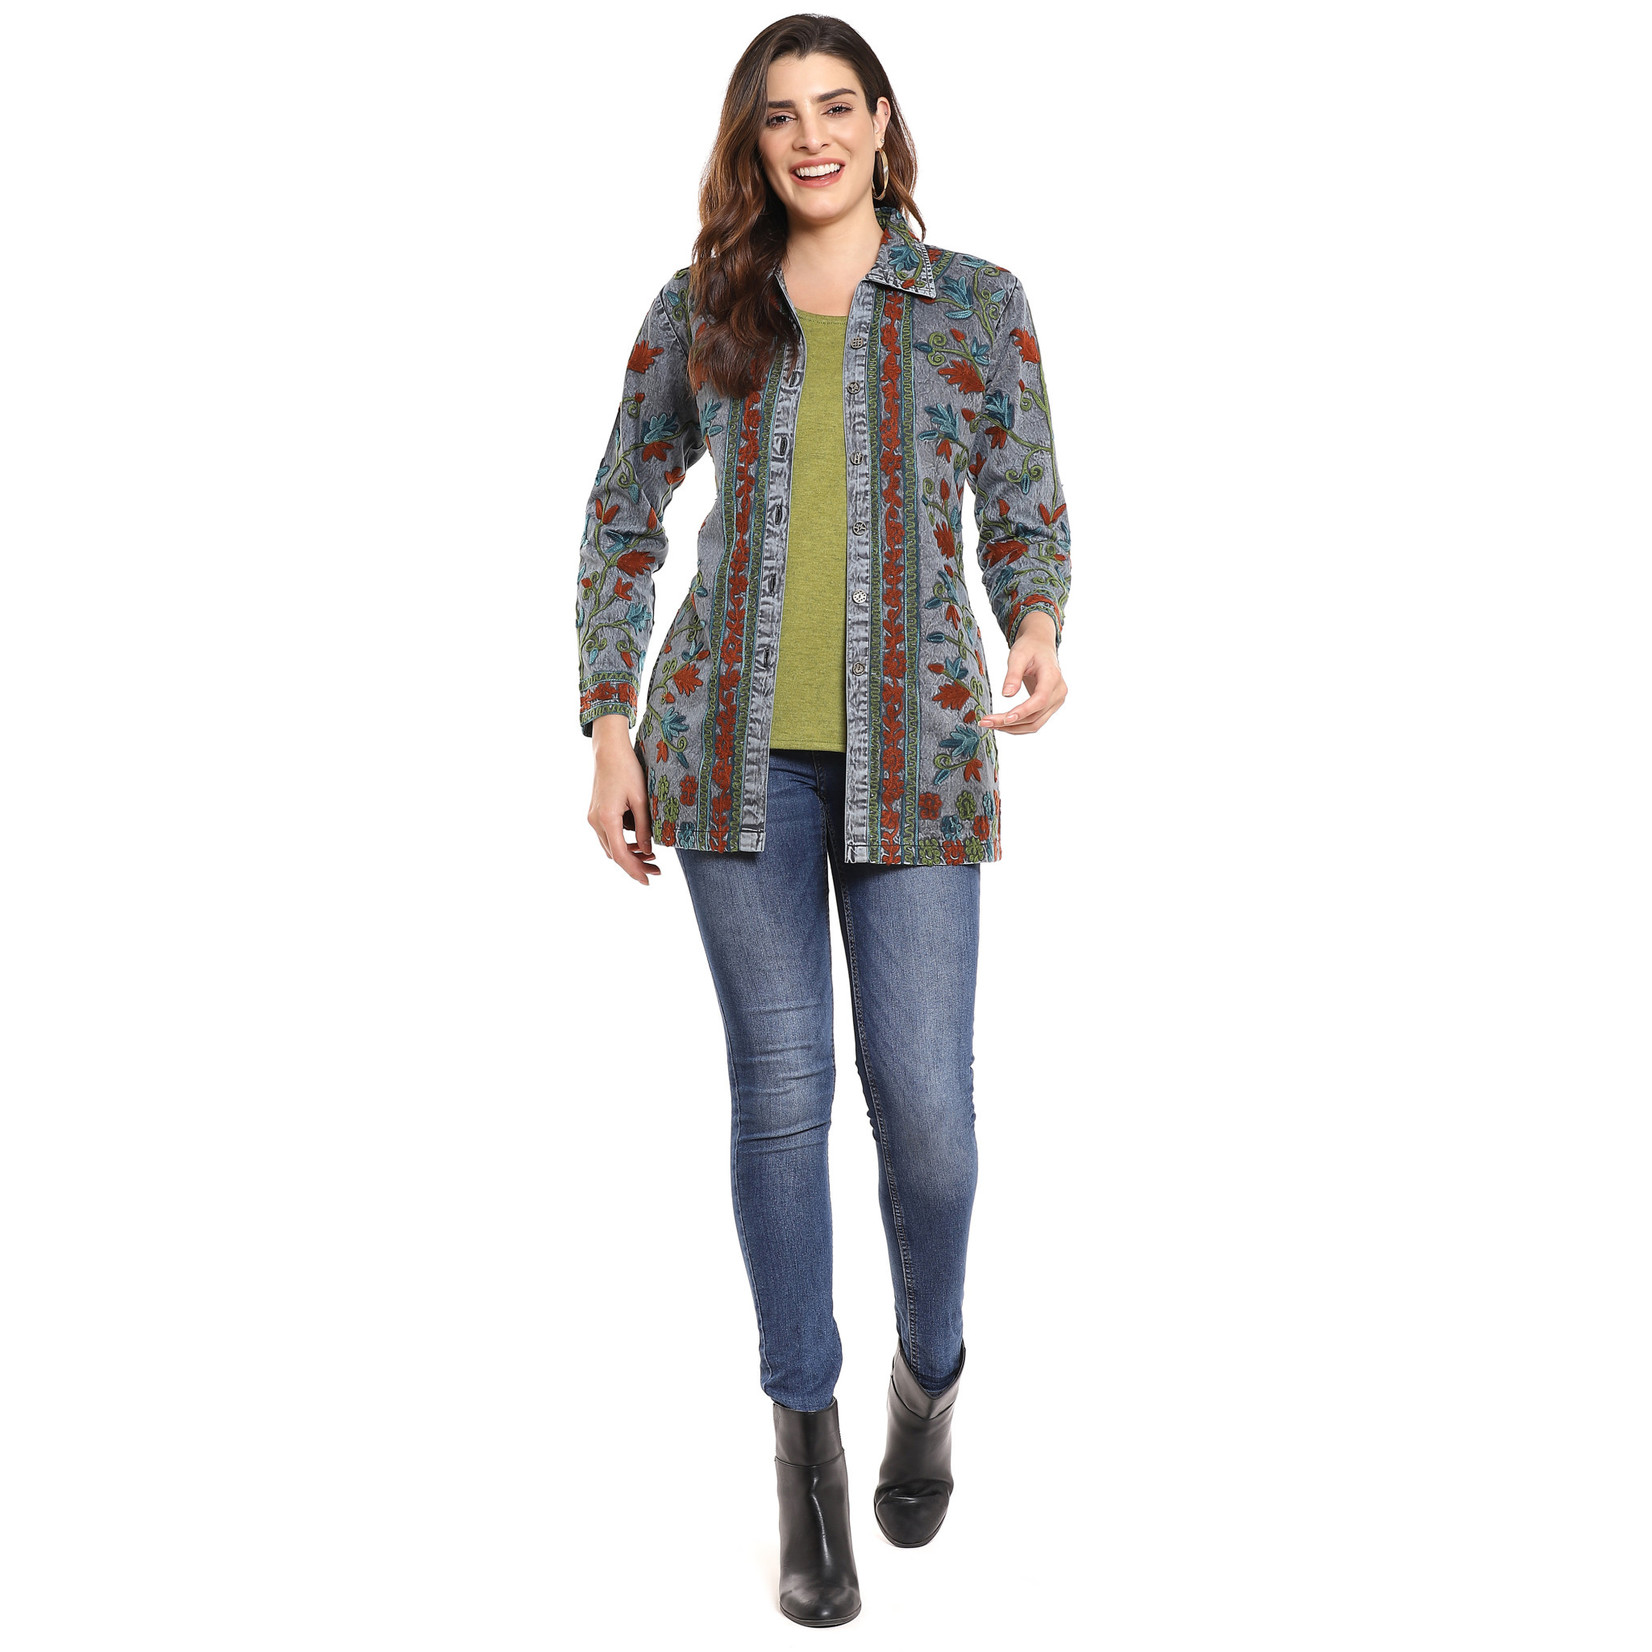 Parsley and Sage Helena Embroidered Long Shirt